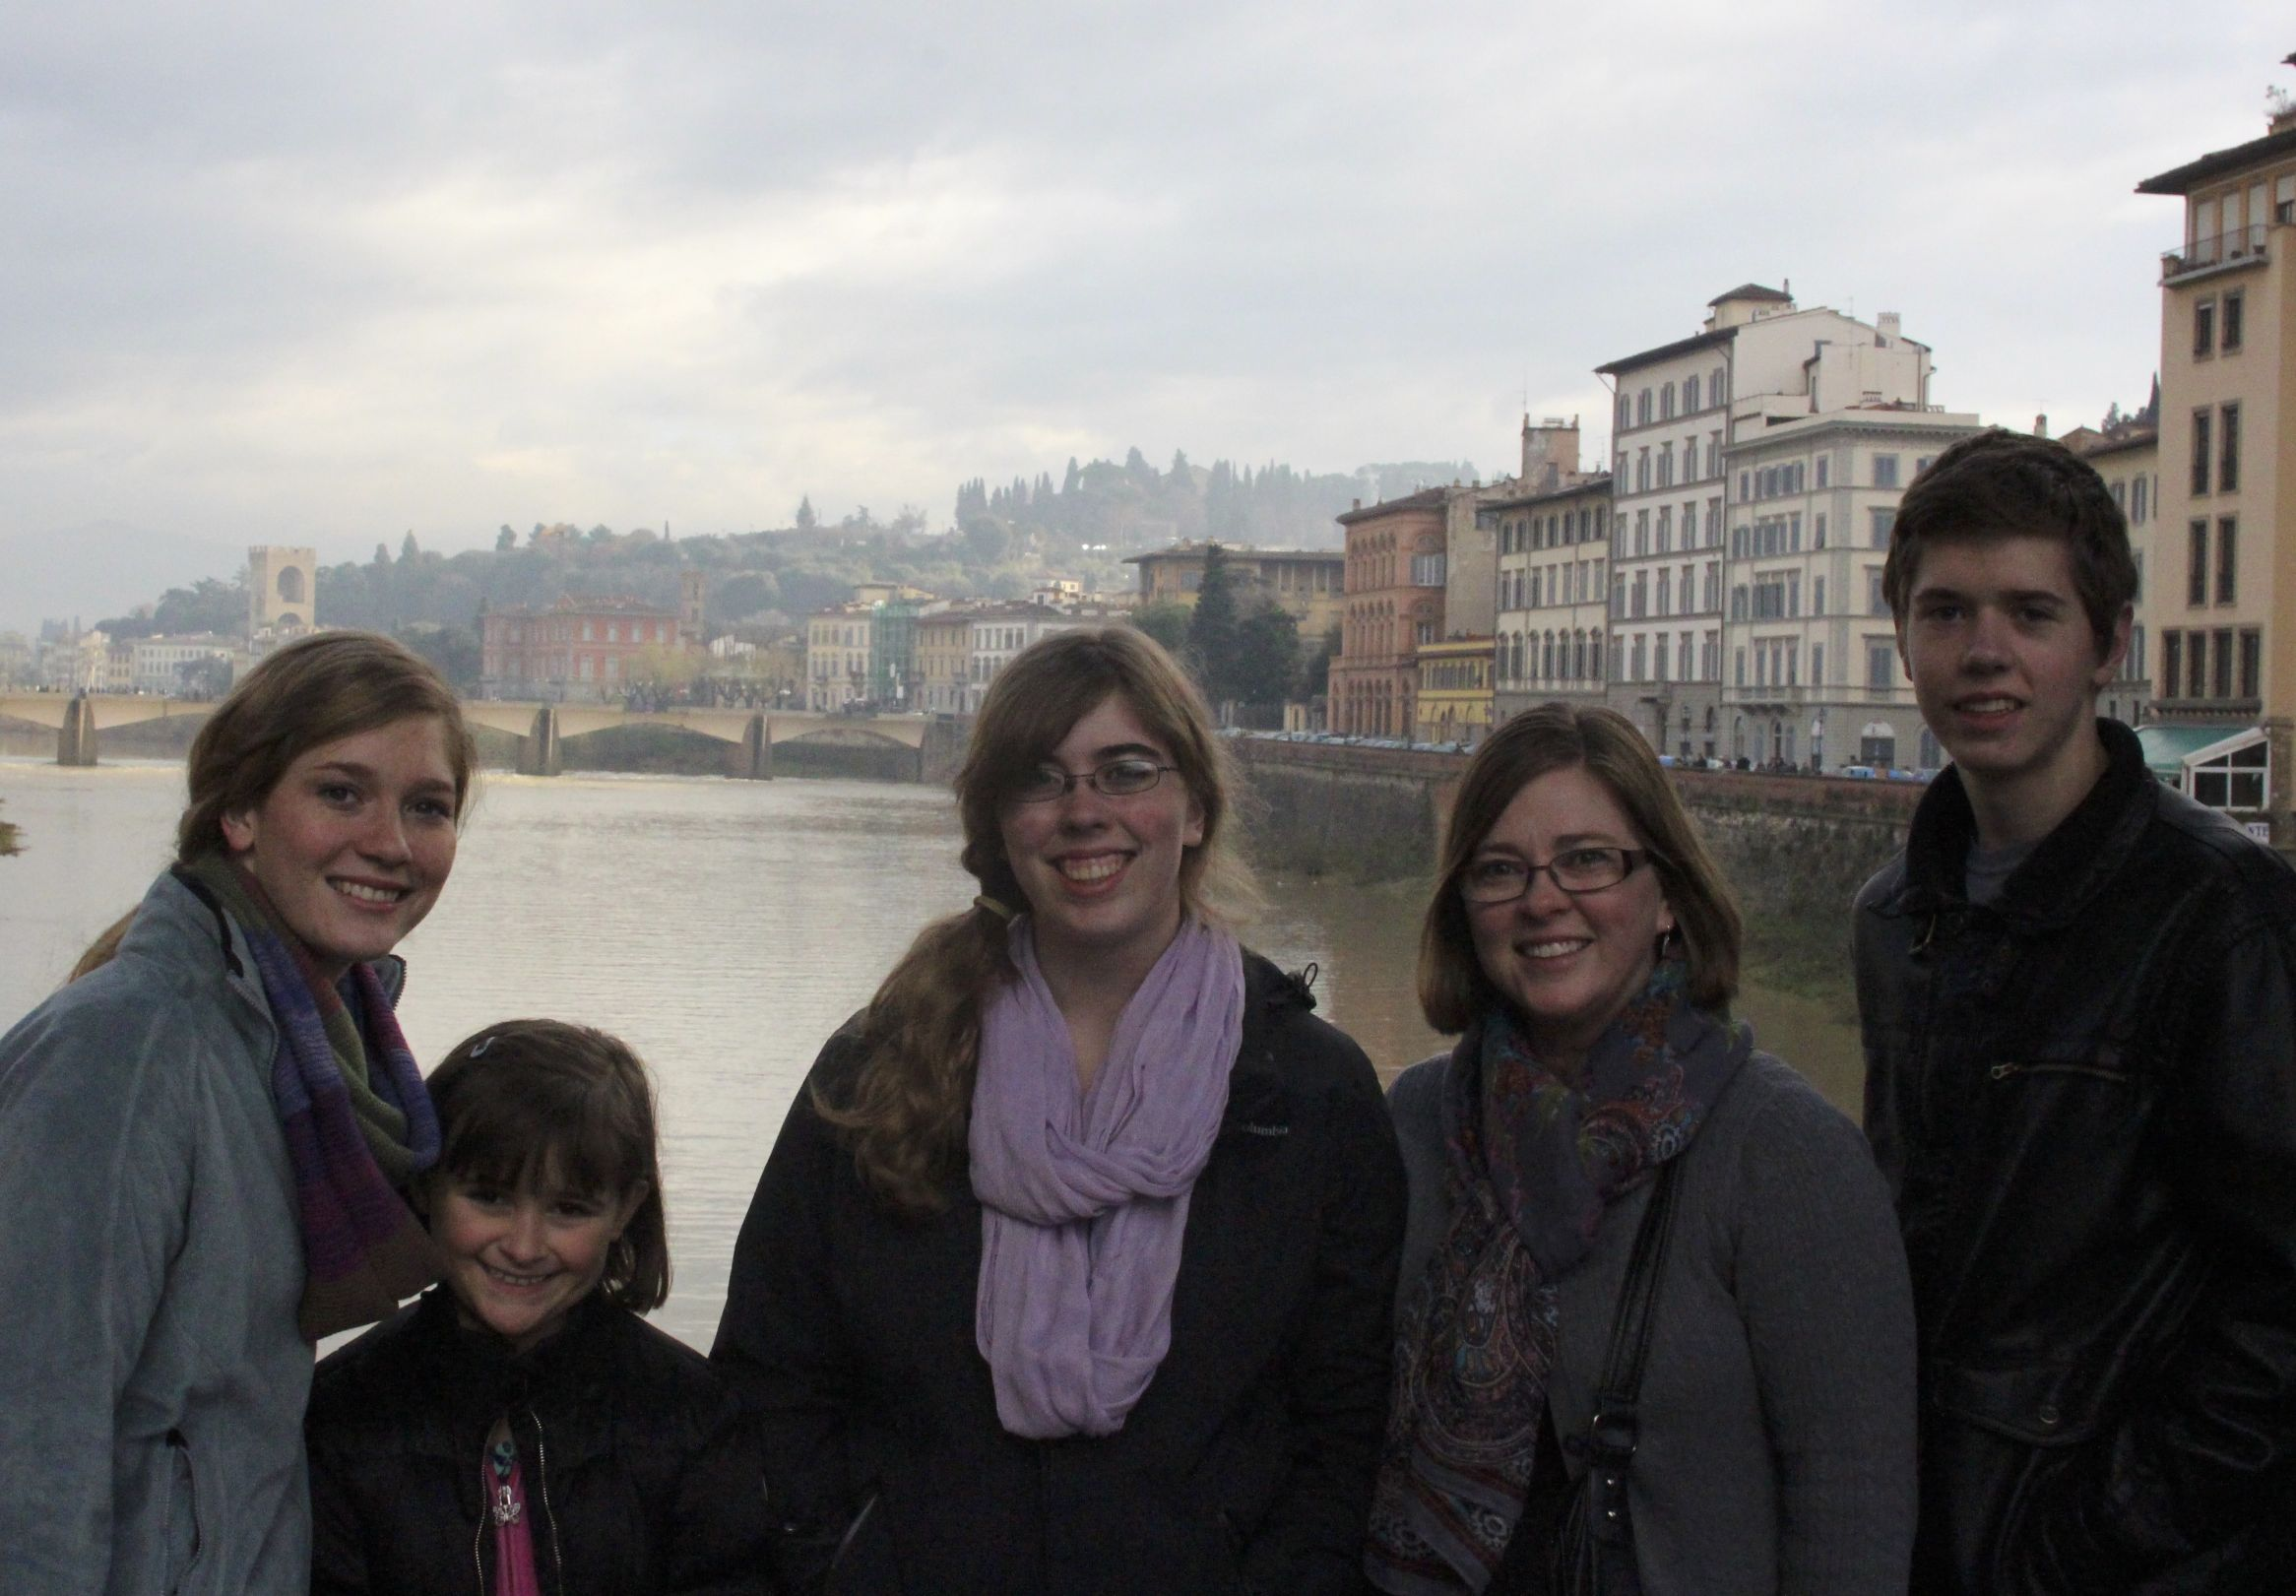 On the Old Bridge of Florence